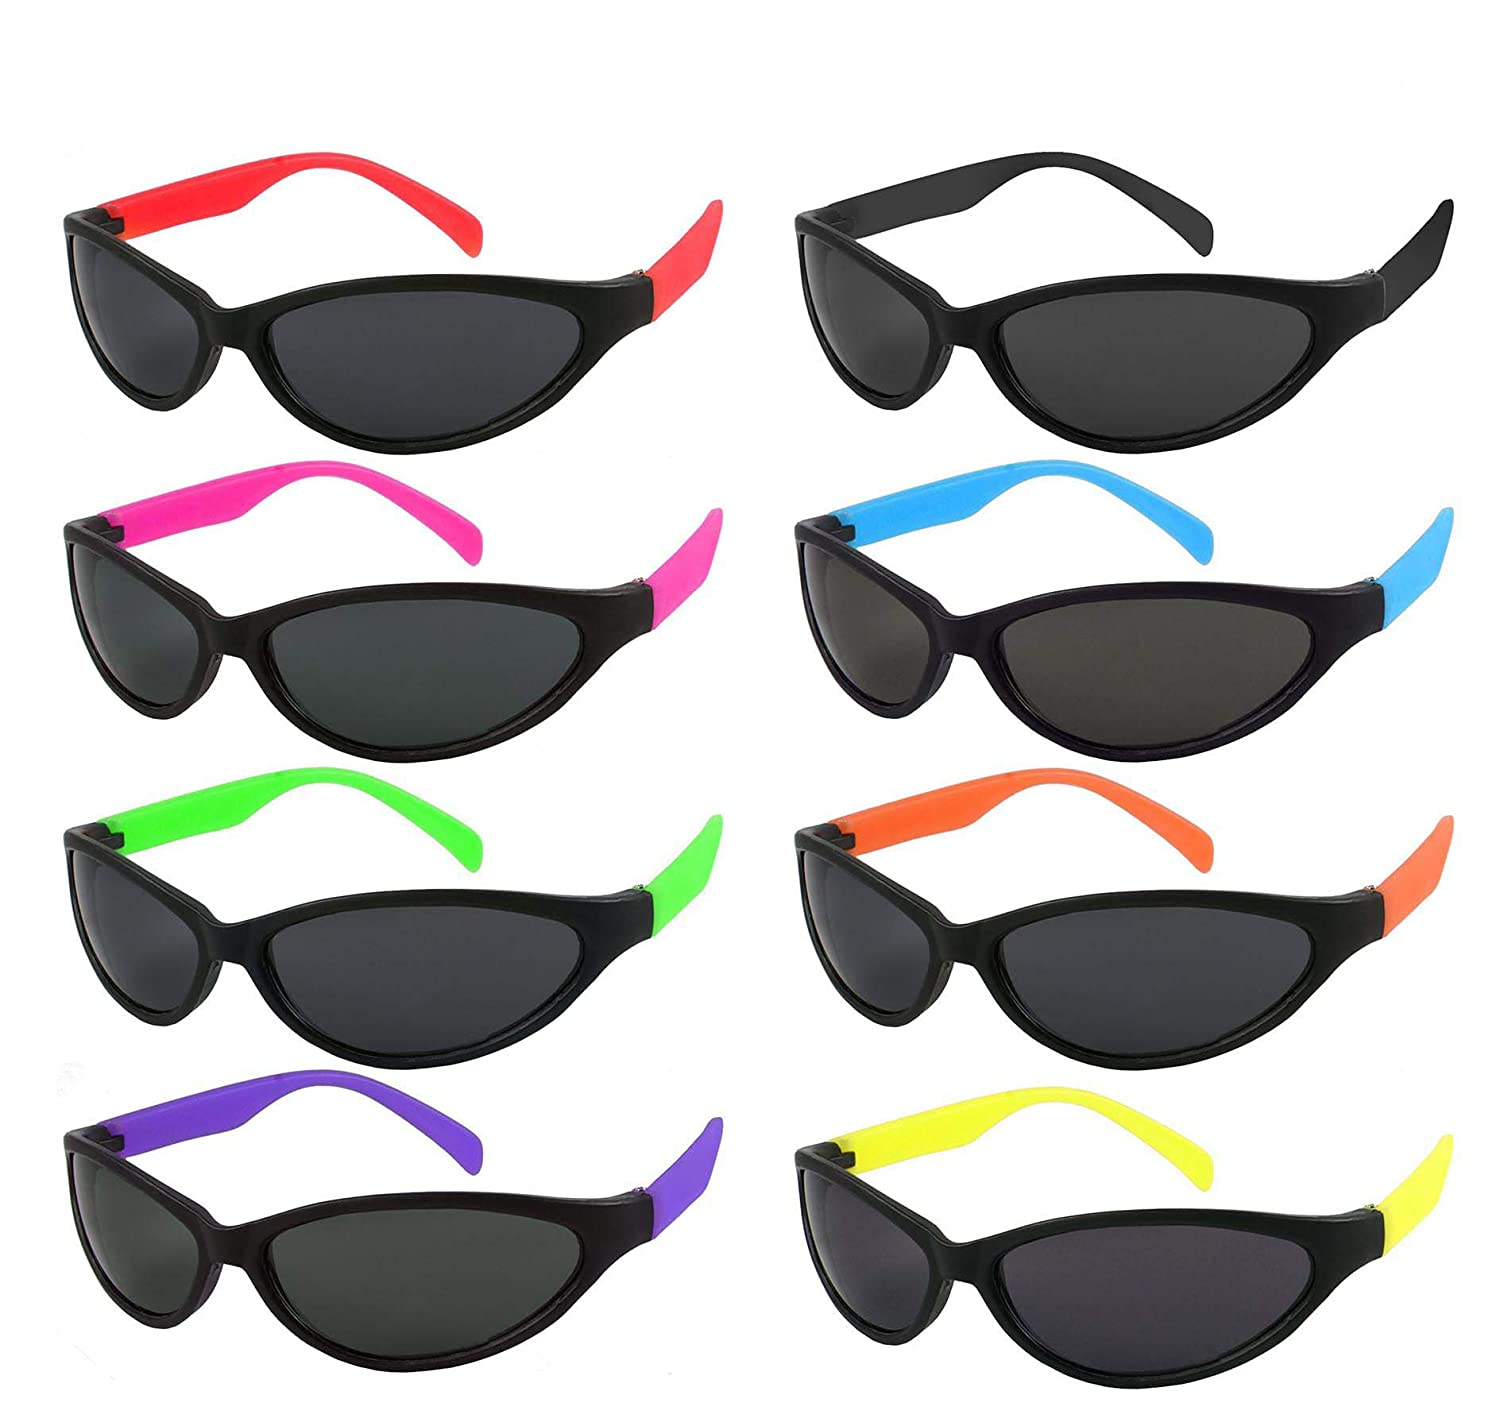 9b928563a5 Amazon.com  Edge I-Wear 6 Pack Neon Party Sunglasses with CPSIA  certified-Lead(Pb) Content Free UV 400 Lens(Made in Taiwan)5402RA-SET-6   Clothing